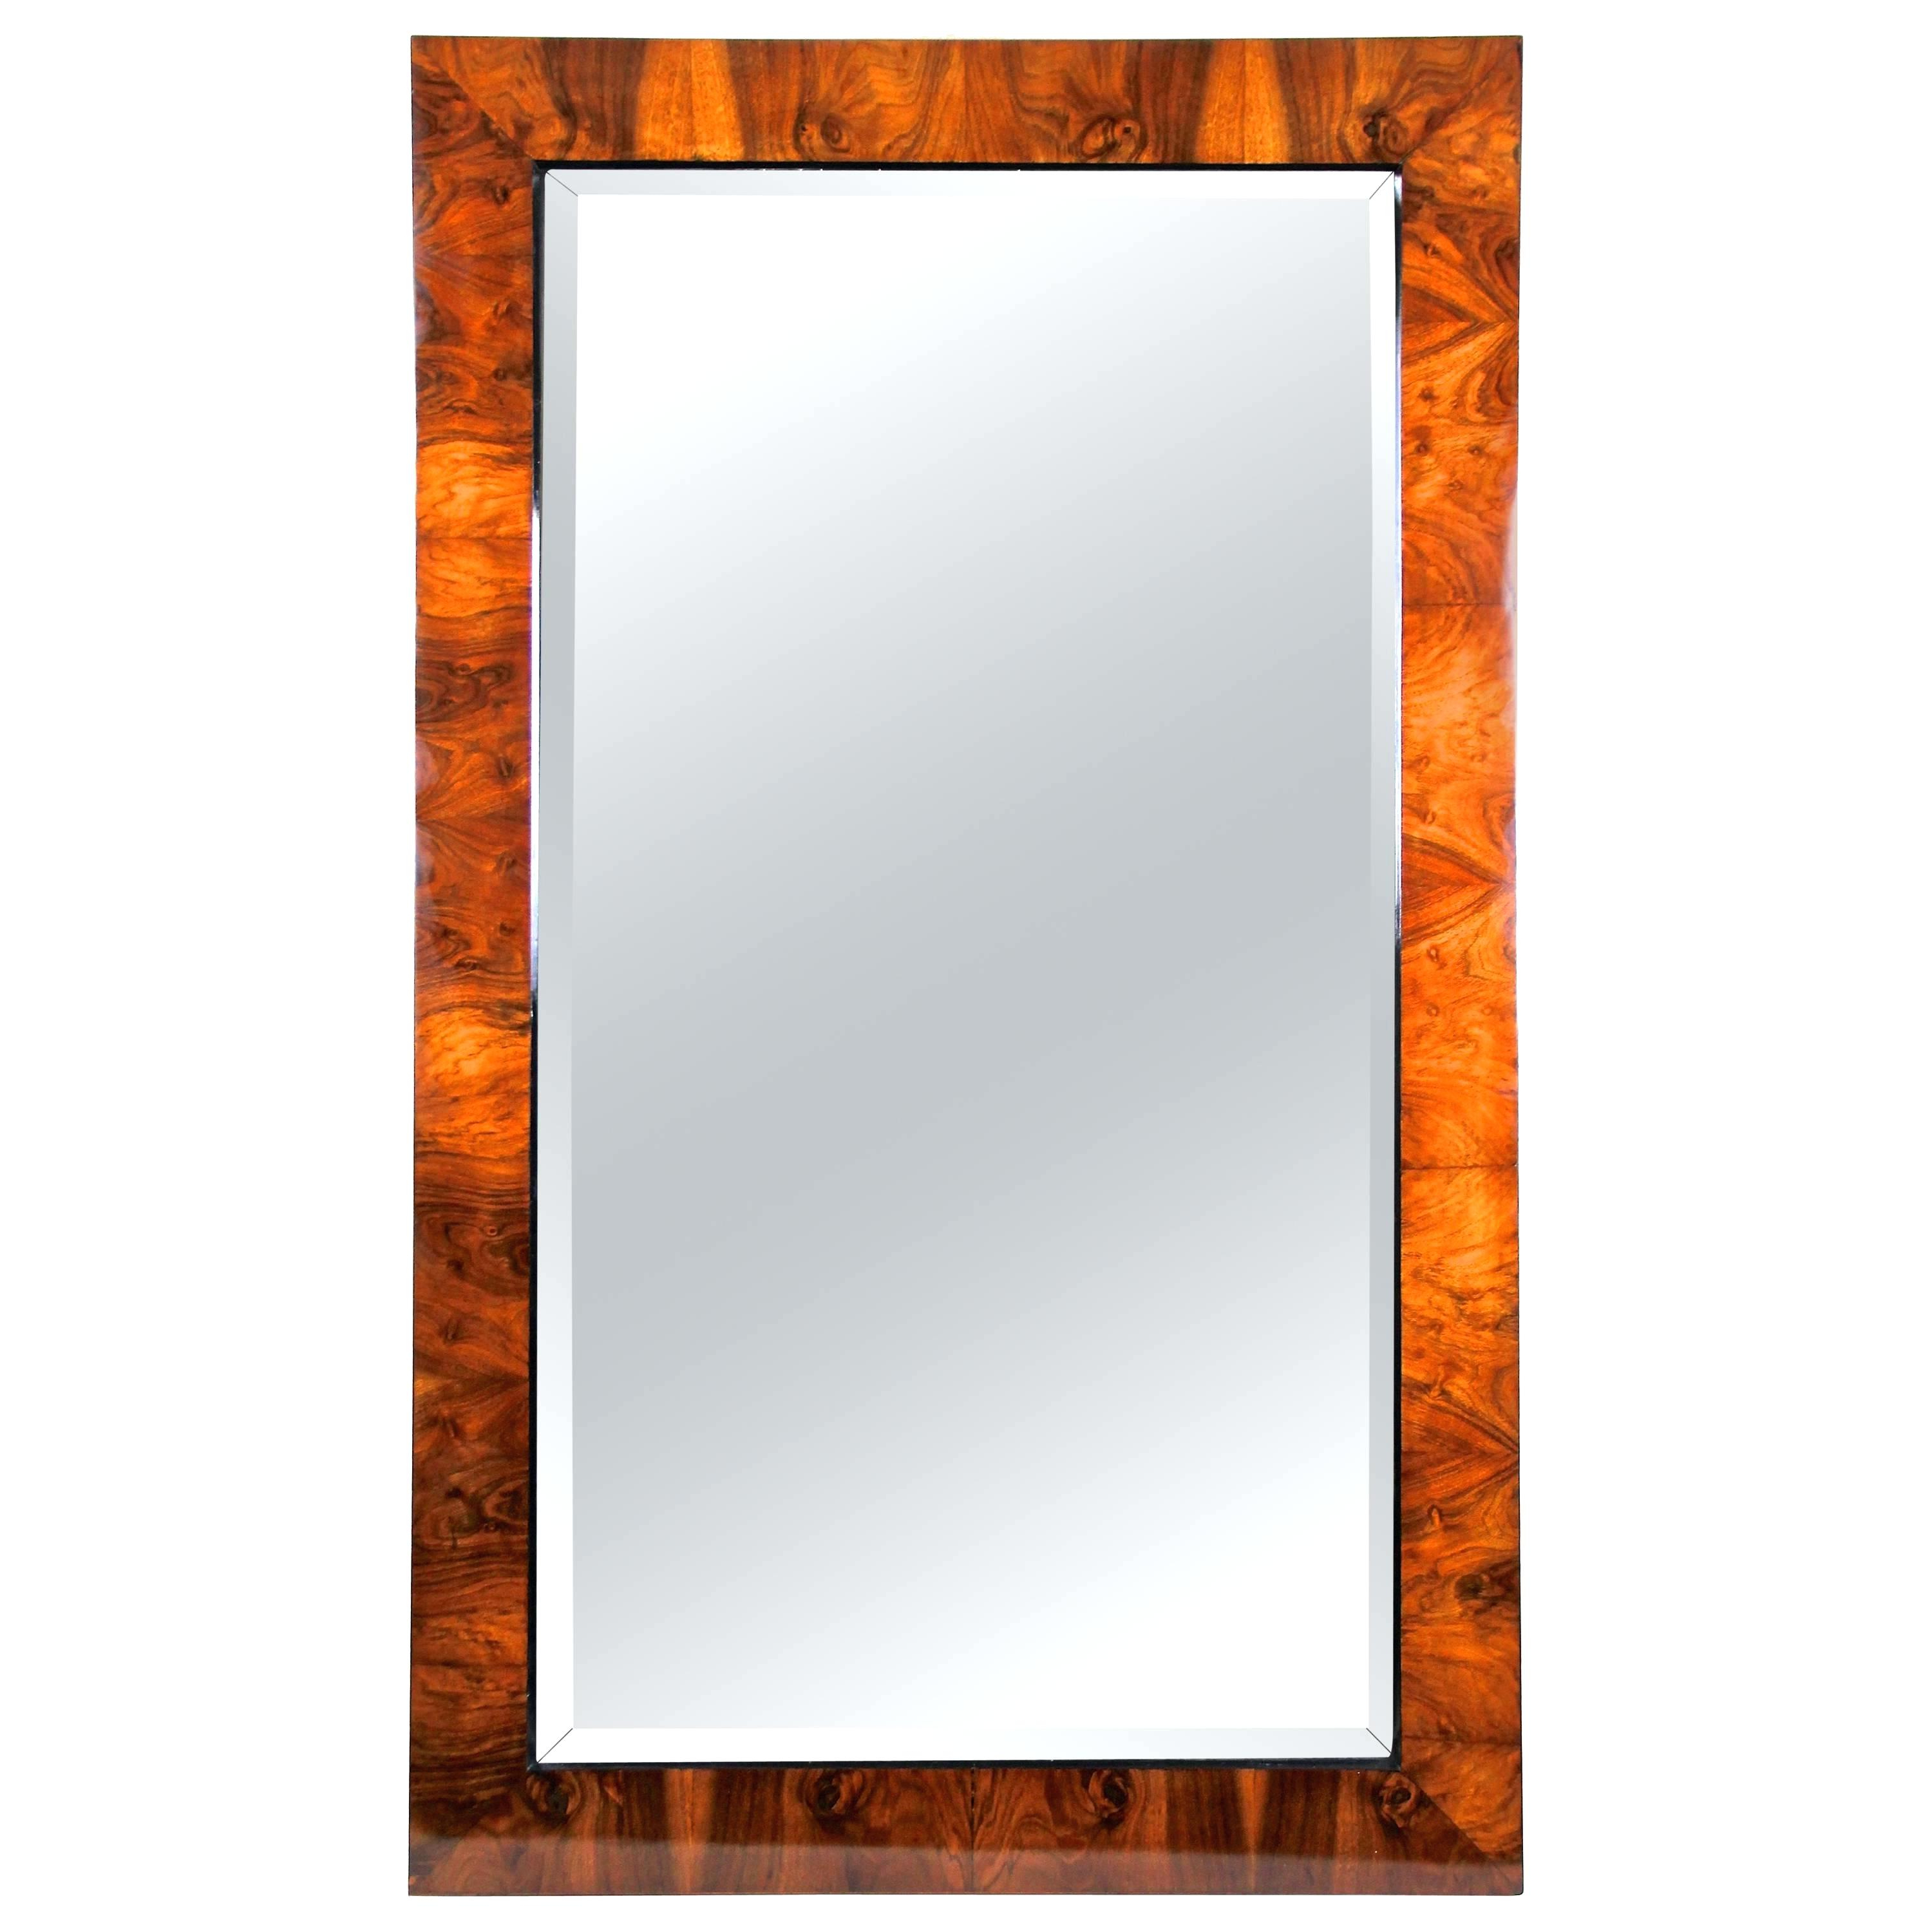 Large Elegant Wall Mirrors Inside Famous Large Elegant Wall Mirrors White Mirror For Bedroom Round Amazon (View 6 of 20)